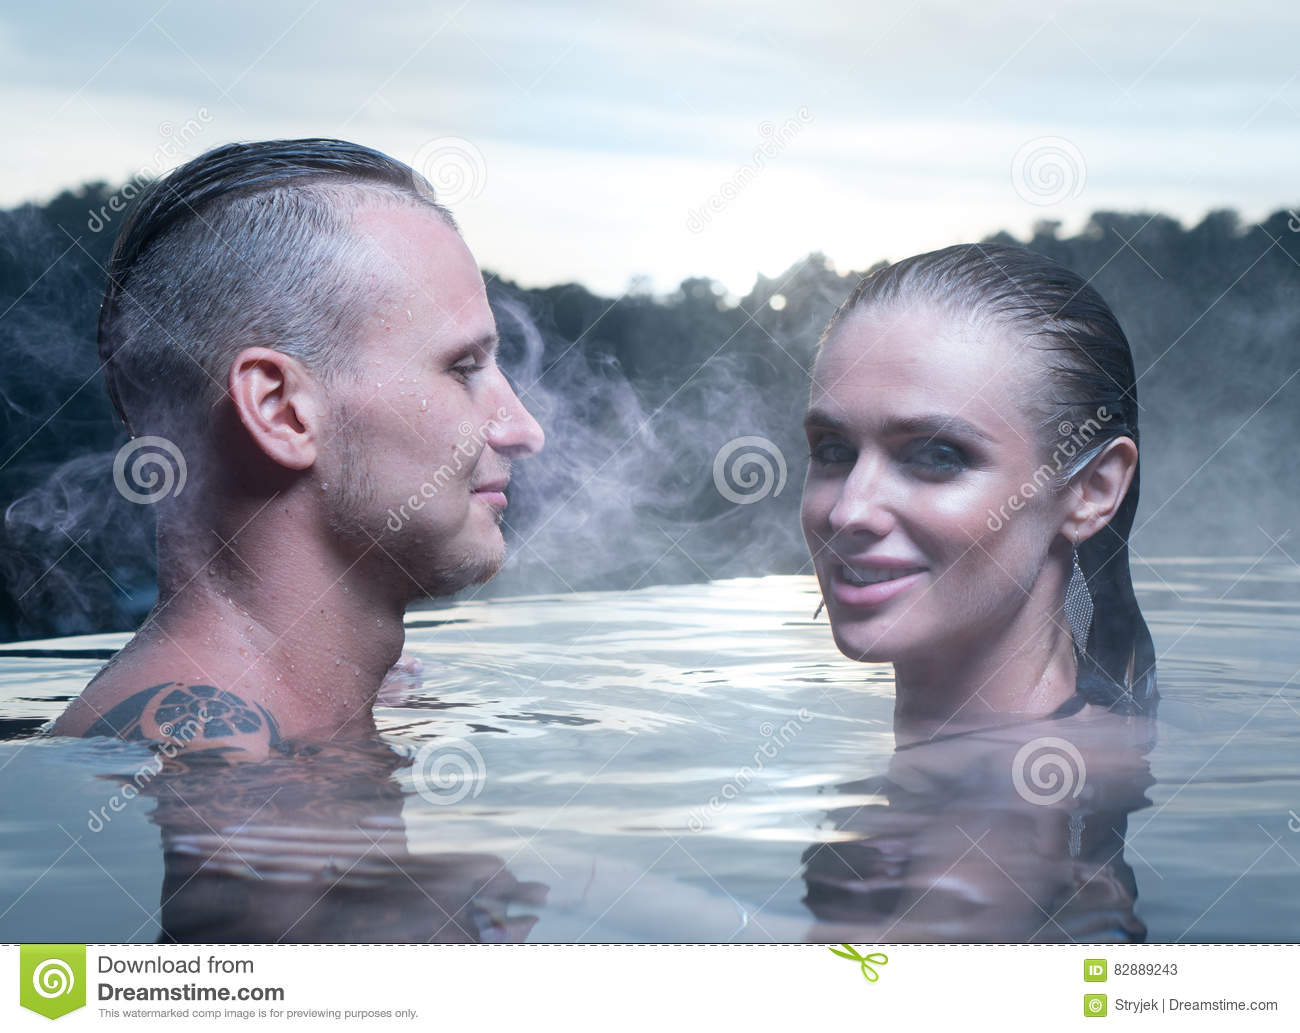 Romantic couple in love relaxing in hot pool on iceland young women and men enjoying bathing relaxed in blue water lagoon icelandic tourist attraction